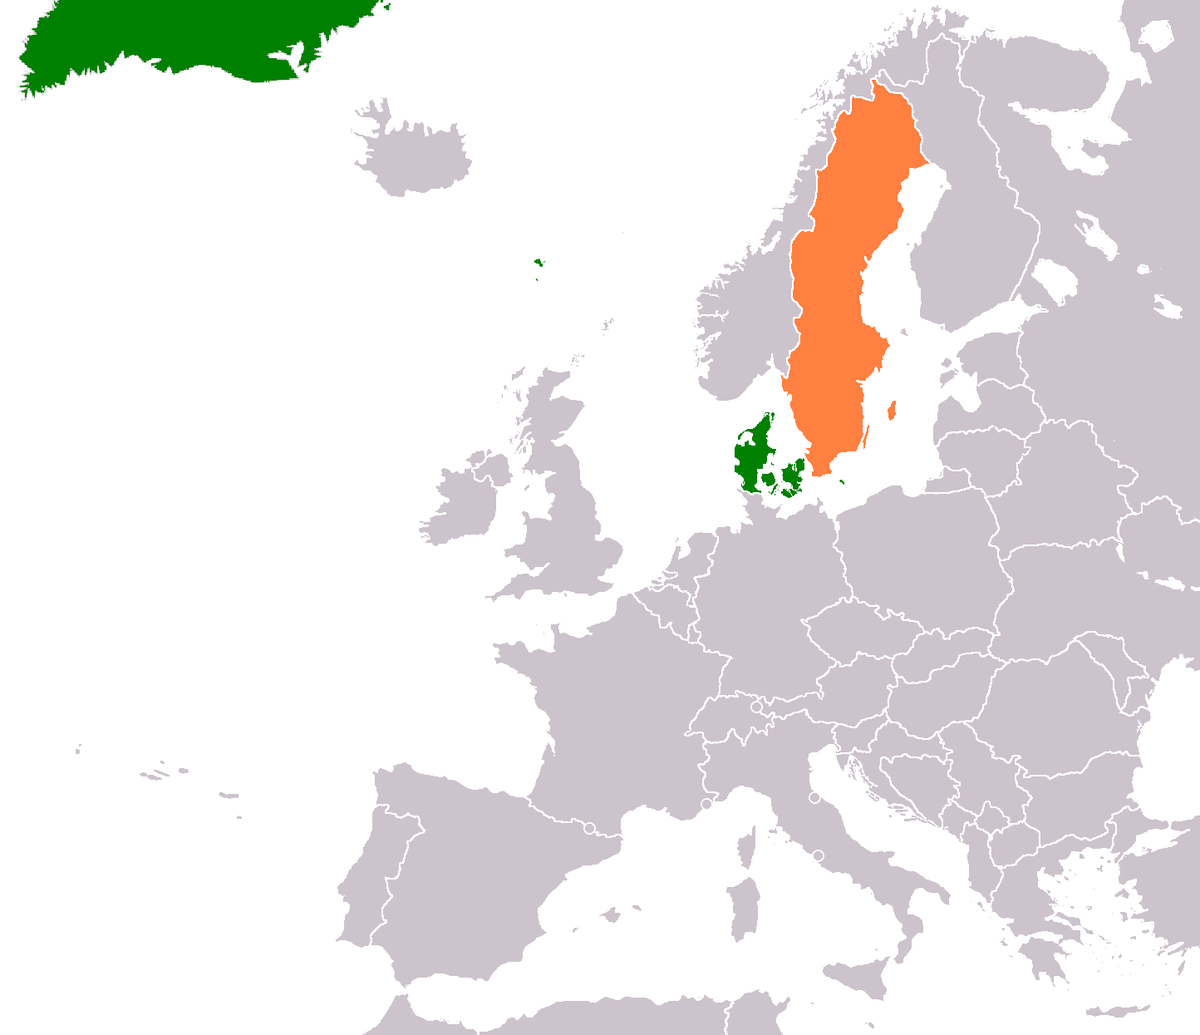 DenmarkSweden Relations Wikipedia - Sweden map wiki